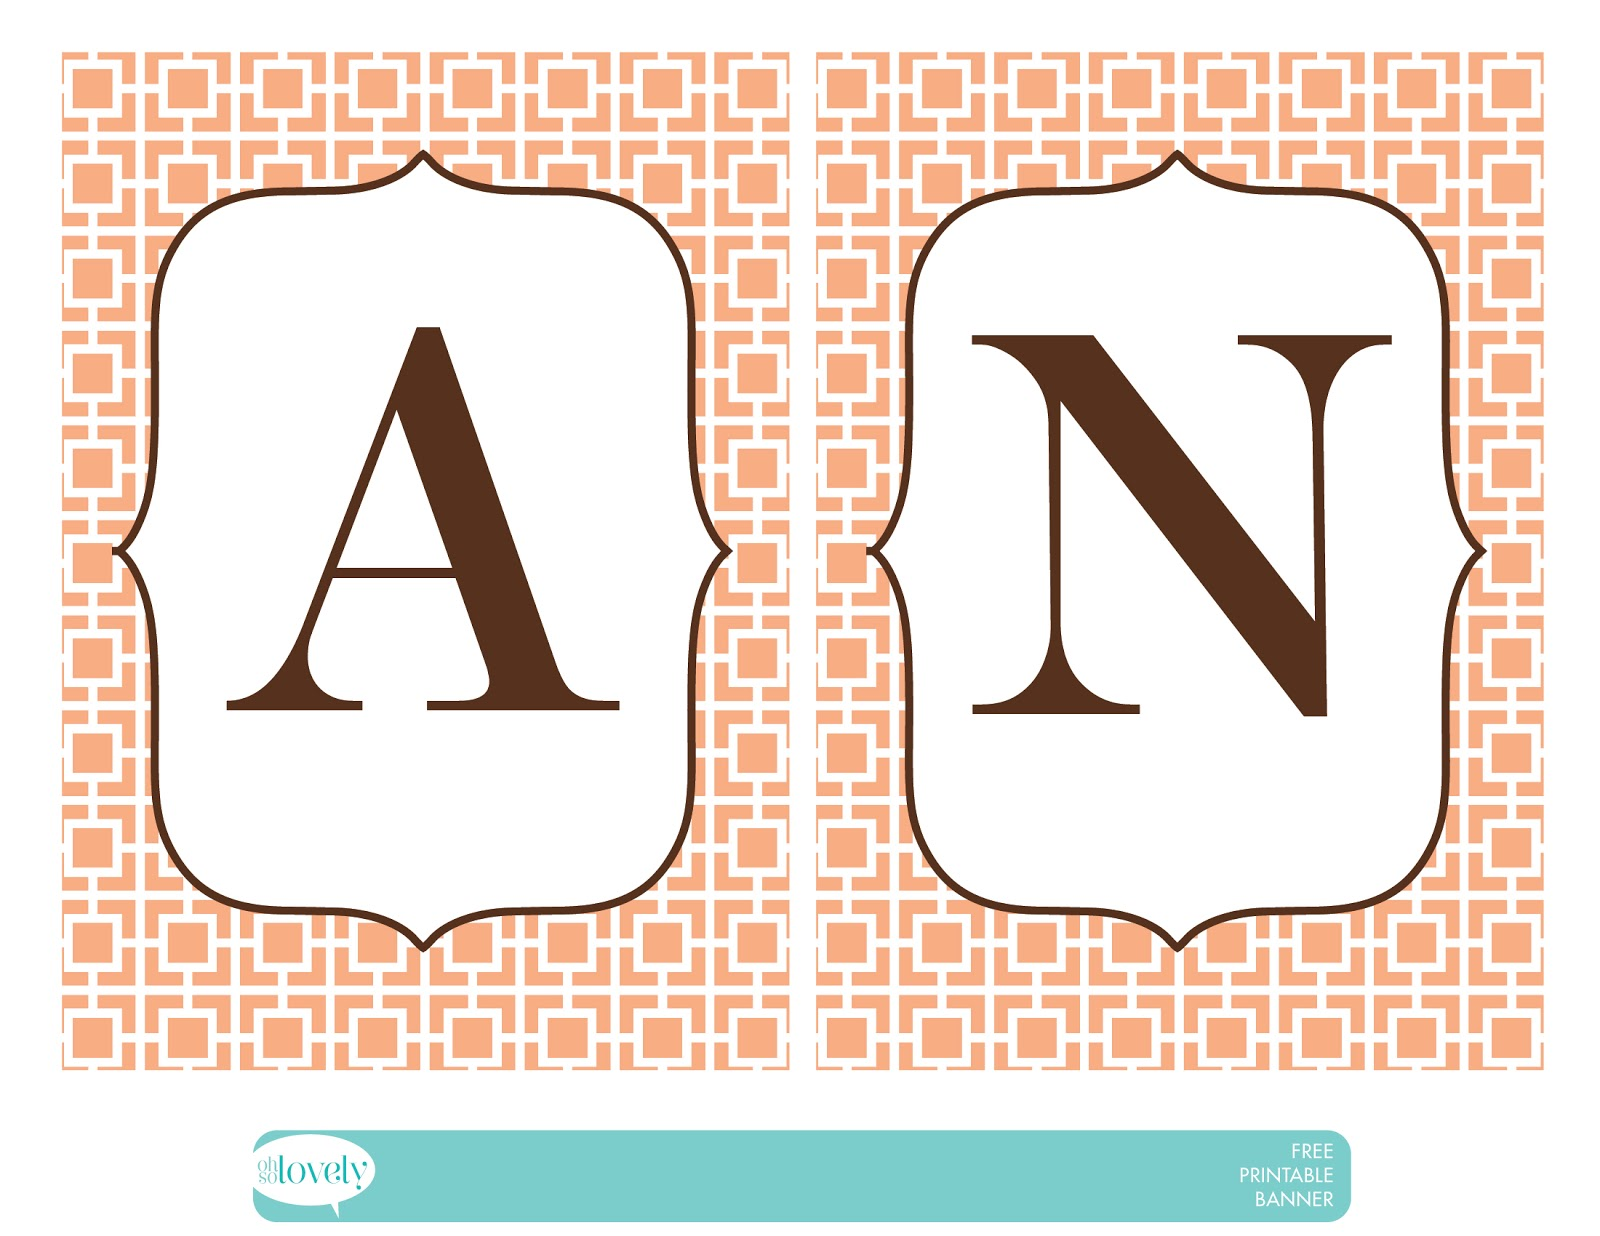 Freebies thanksgiving printables oh so lovely blog on letter sized white card stock paper and cut them out with scissors a large 15 hole punch is also a very helpful too that helps give an even more spiritdancerdesigns Images